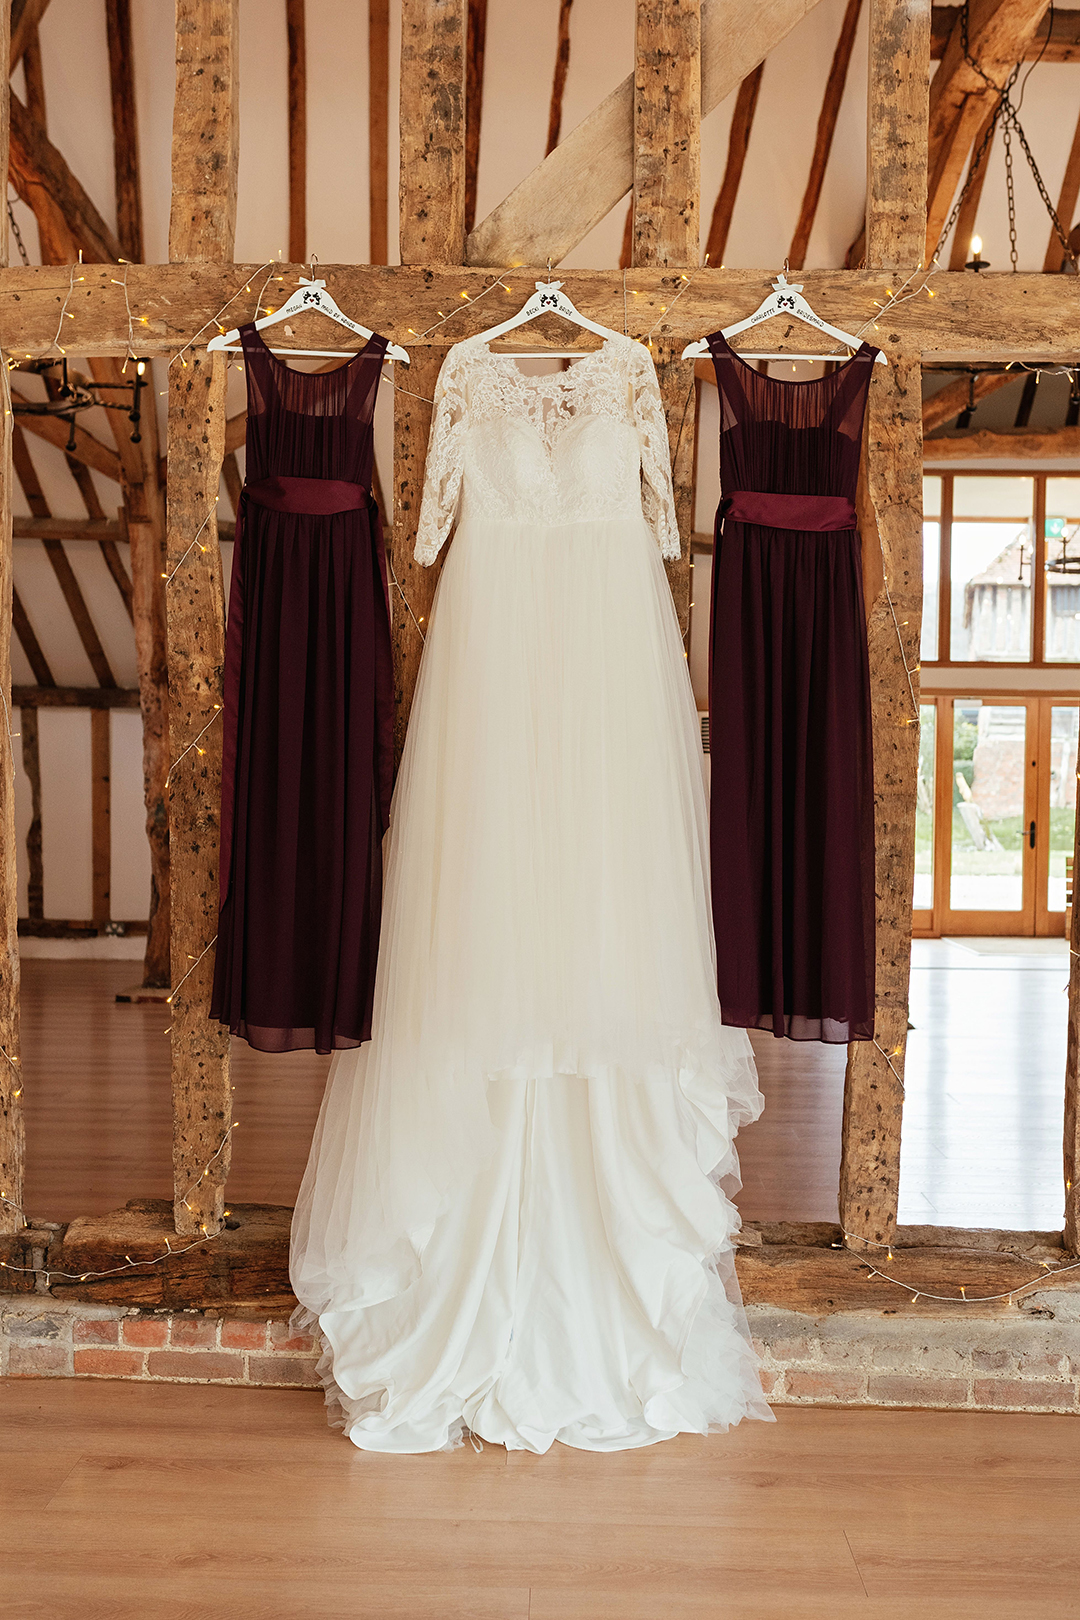 Wed2B Wedding Dress and Purple Bridesmaid Dresses Hanging on Wooden Beam in Mil Pond Barn Colville Hall